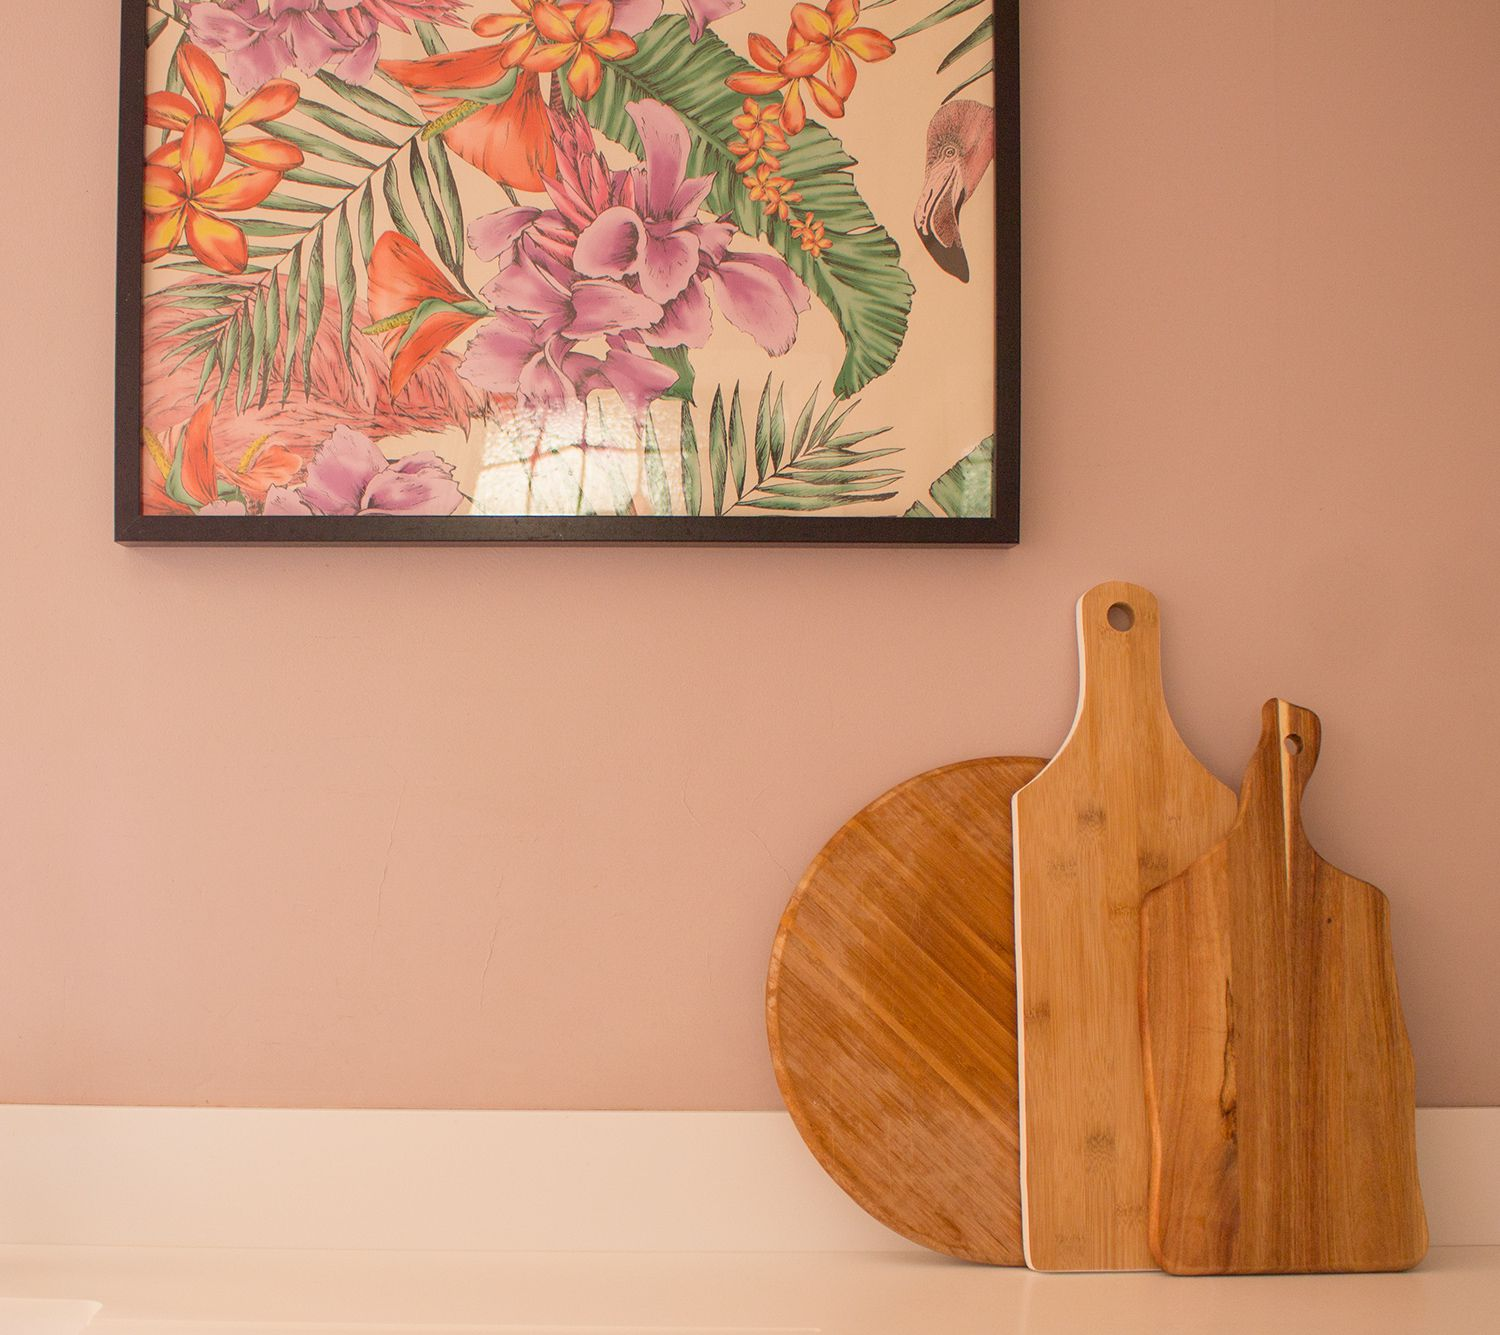 A close up some chopping boards leaning against the worktop and the pink walls.